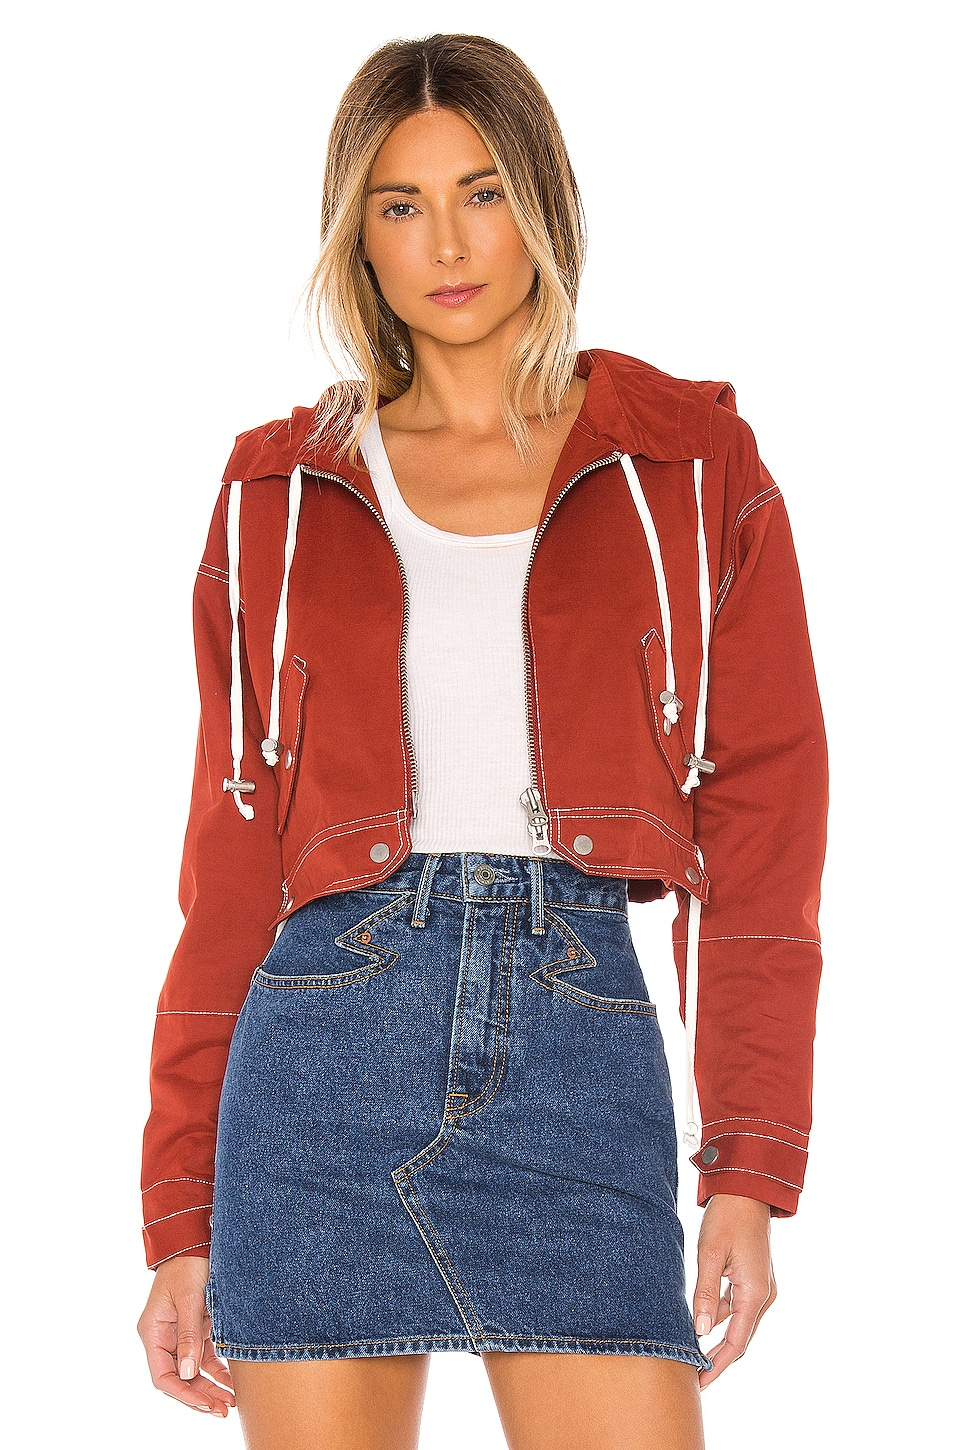 Tularosa The Mimi Jacket in Brick Red